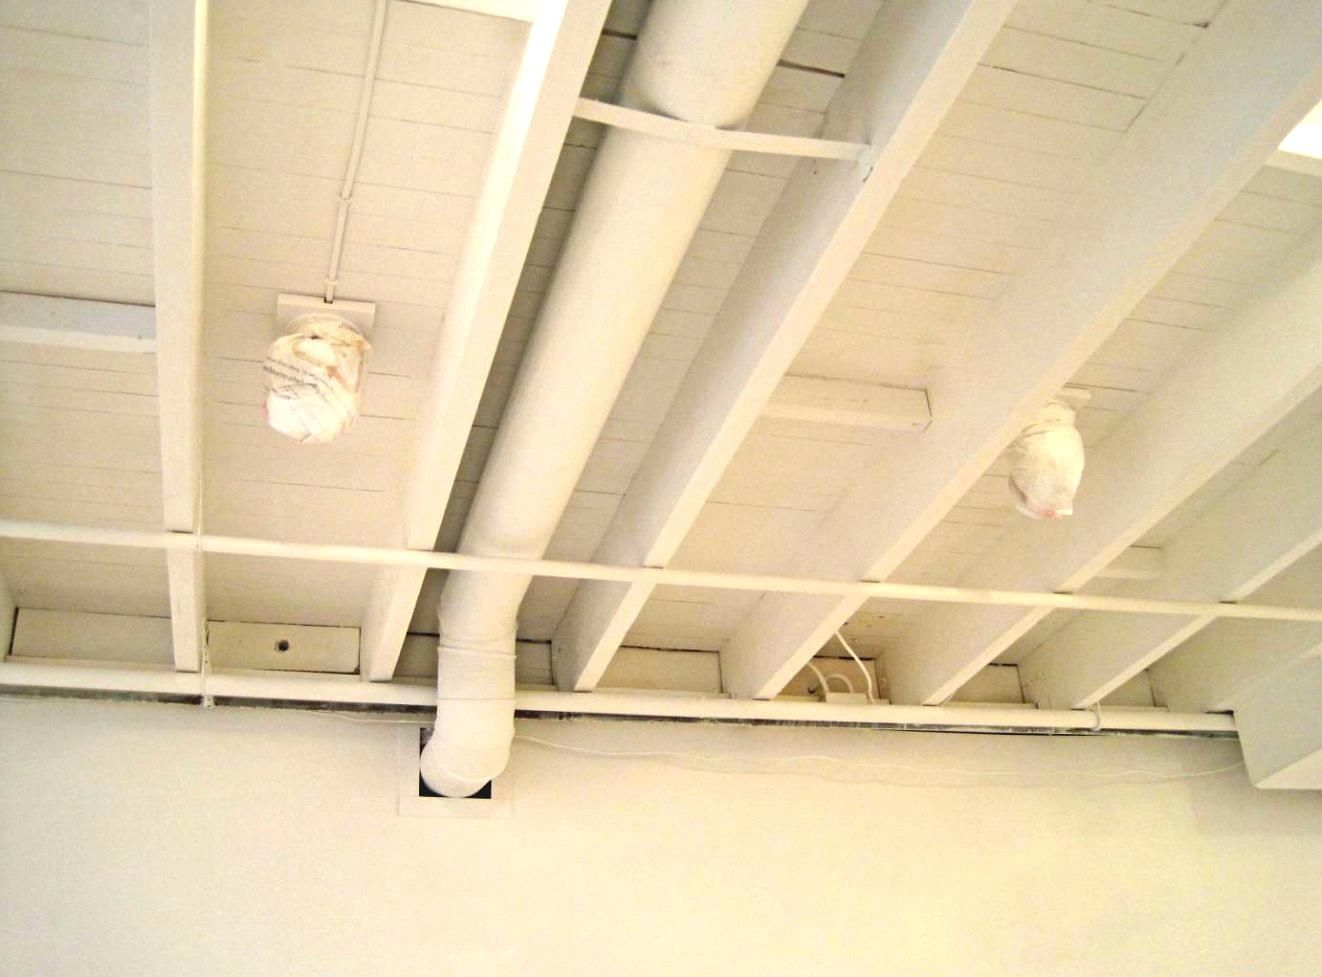 Pin by Home Decoration ideas on Basement ceiling tiles | Pinterest ...